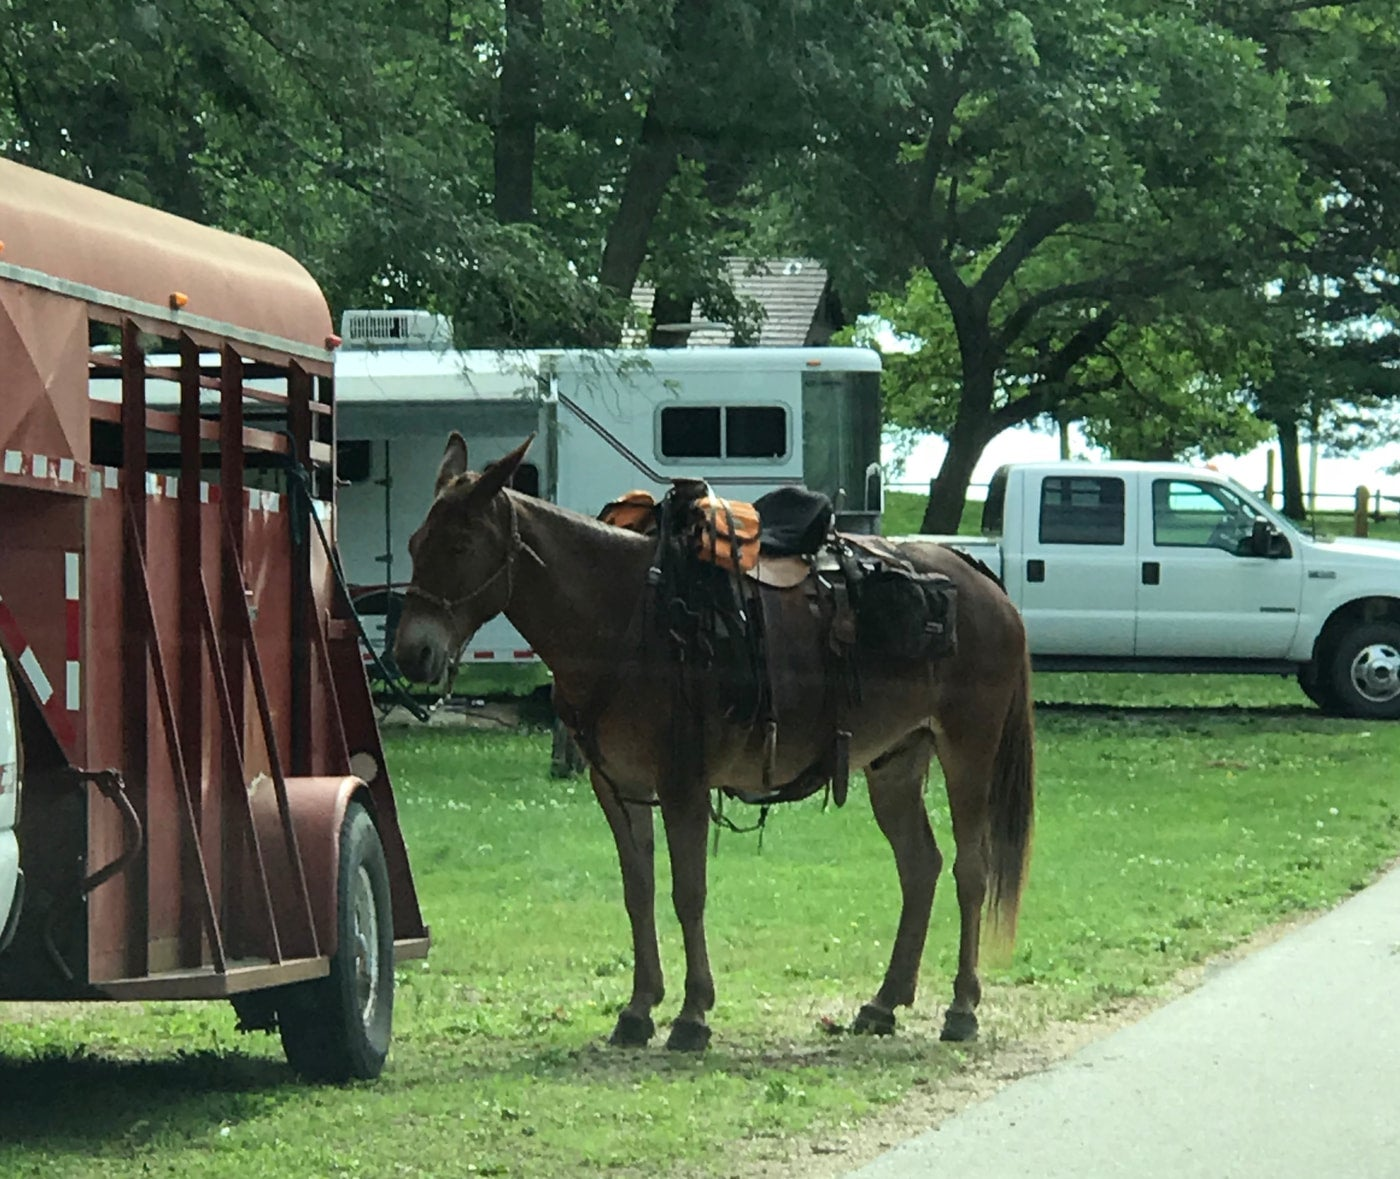 Saddled mule tied to the outside of a horse trailer at Lake of Three Fires Campsite.